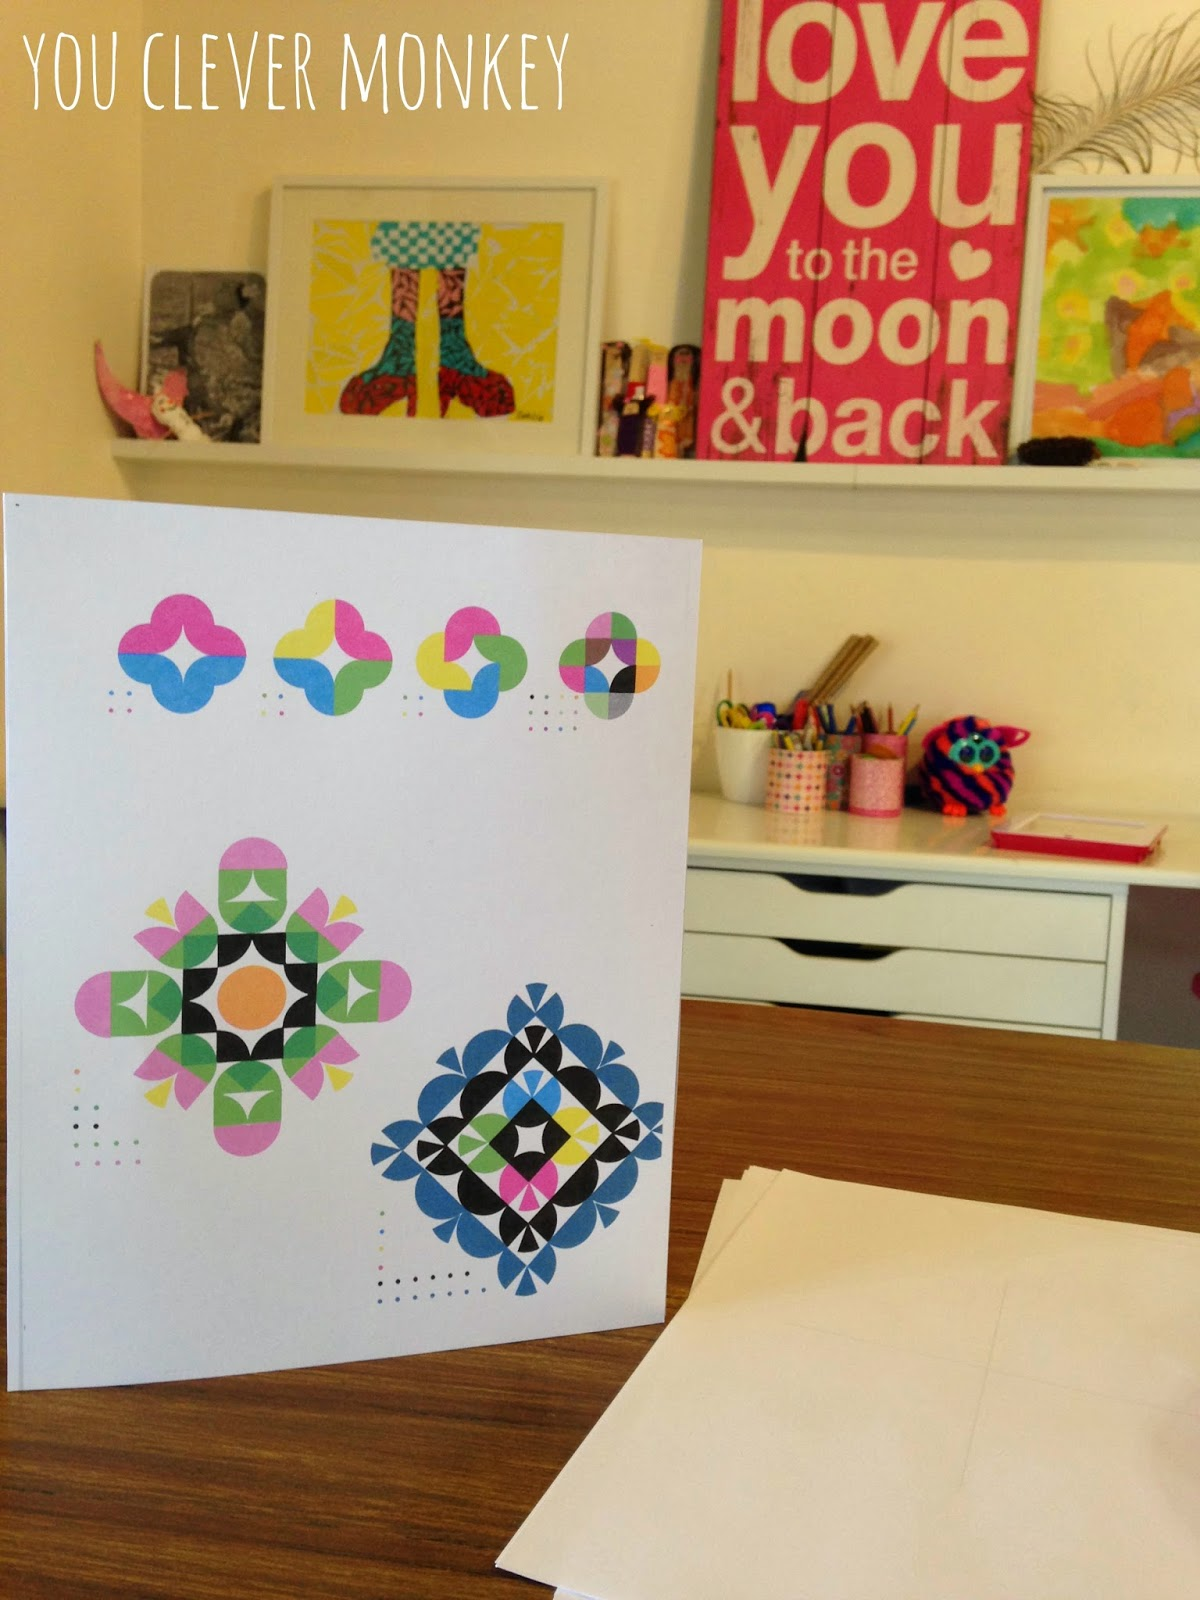 Symmetrical sticker pictures - simple art activity inspired by Ed Emberley's Picture Pie book.  Perfect for mixed ages.  Go to http://youclevermonkey.com/ for more information.